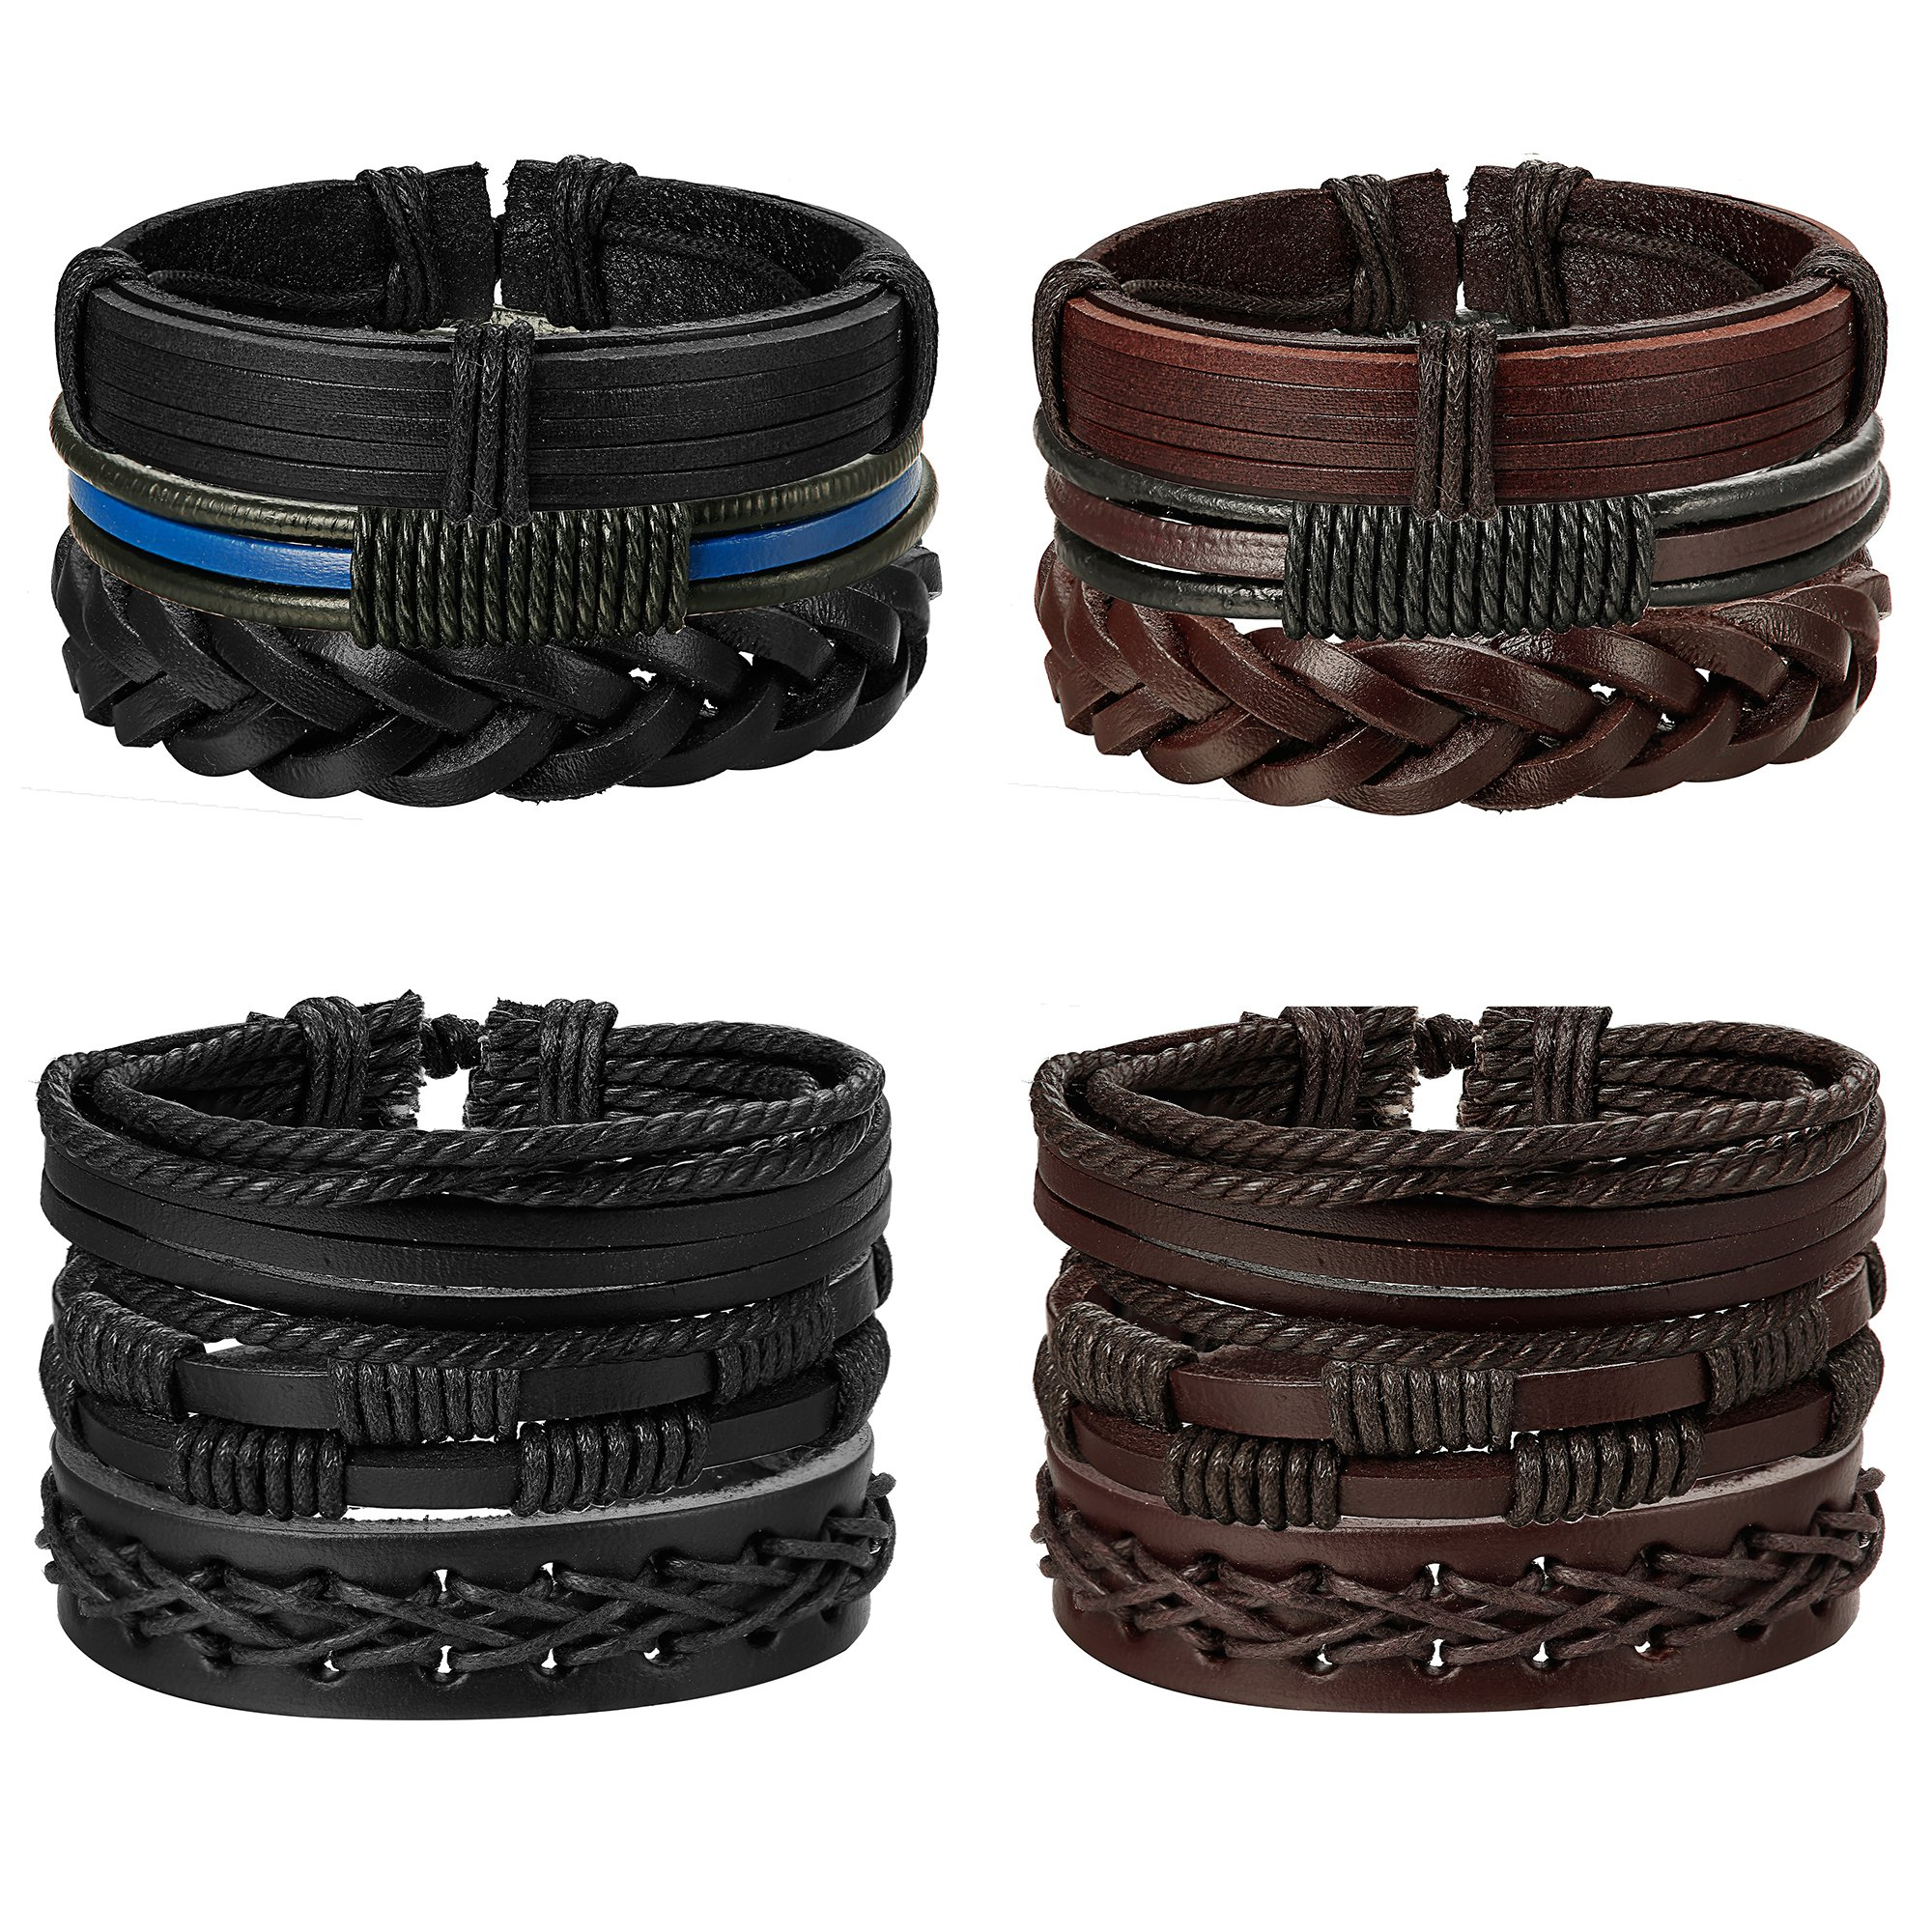 Jstyle 12Pcs Braided Leather Bracelet for Men Women Cuff Wrap Bracelet Adjustable Black and Brown (A:12Pcs) by Jstyle (Image #2)